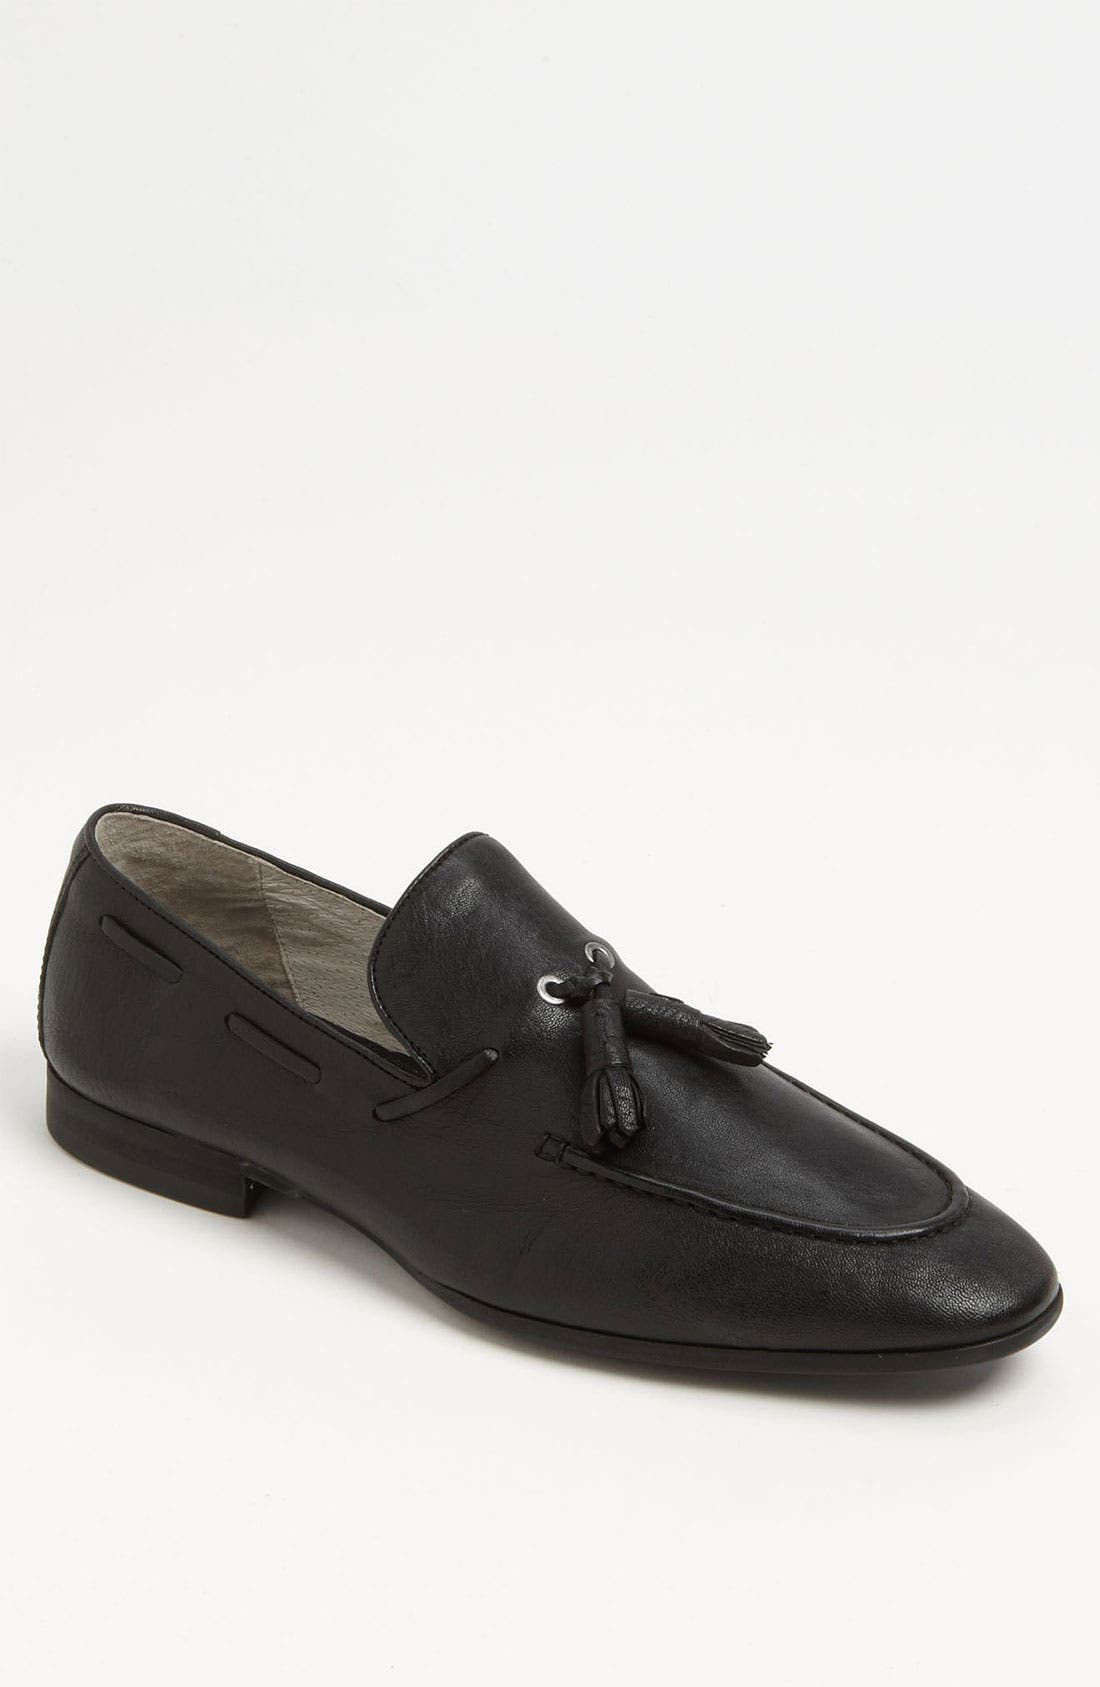 Alternate Image 1 Selected - Vince Camuto 'Castro' Leather Tassel Loafer